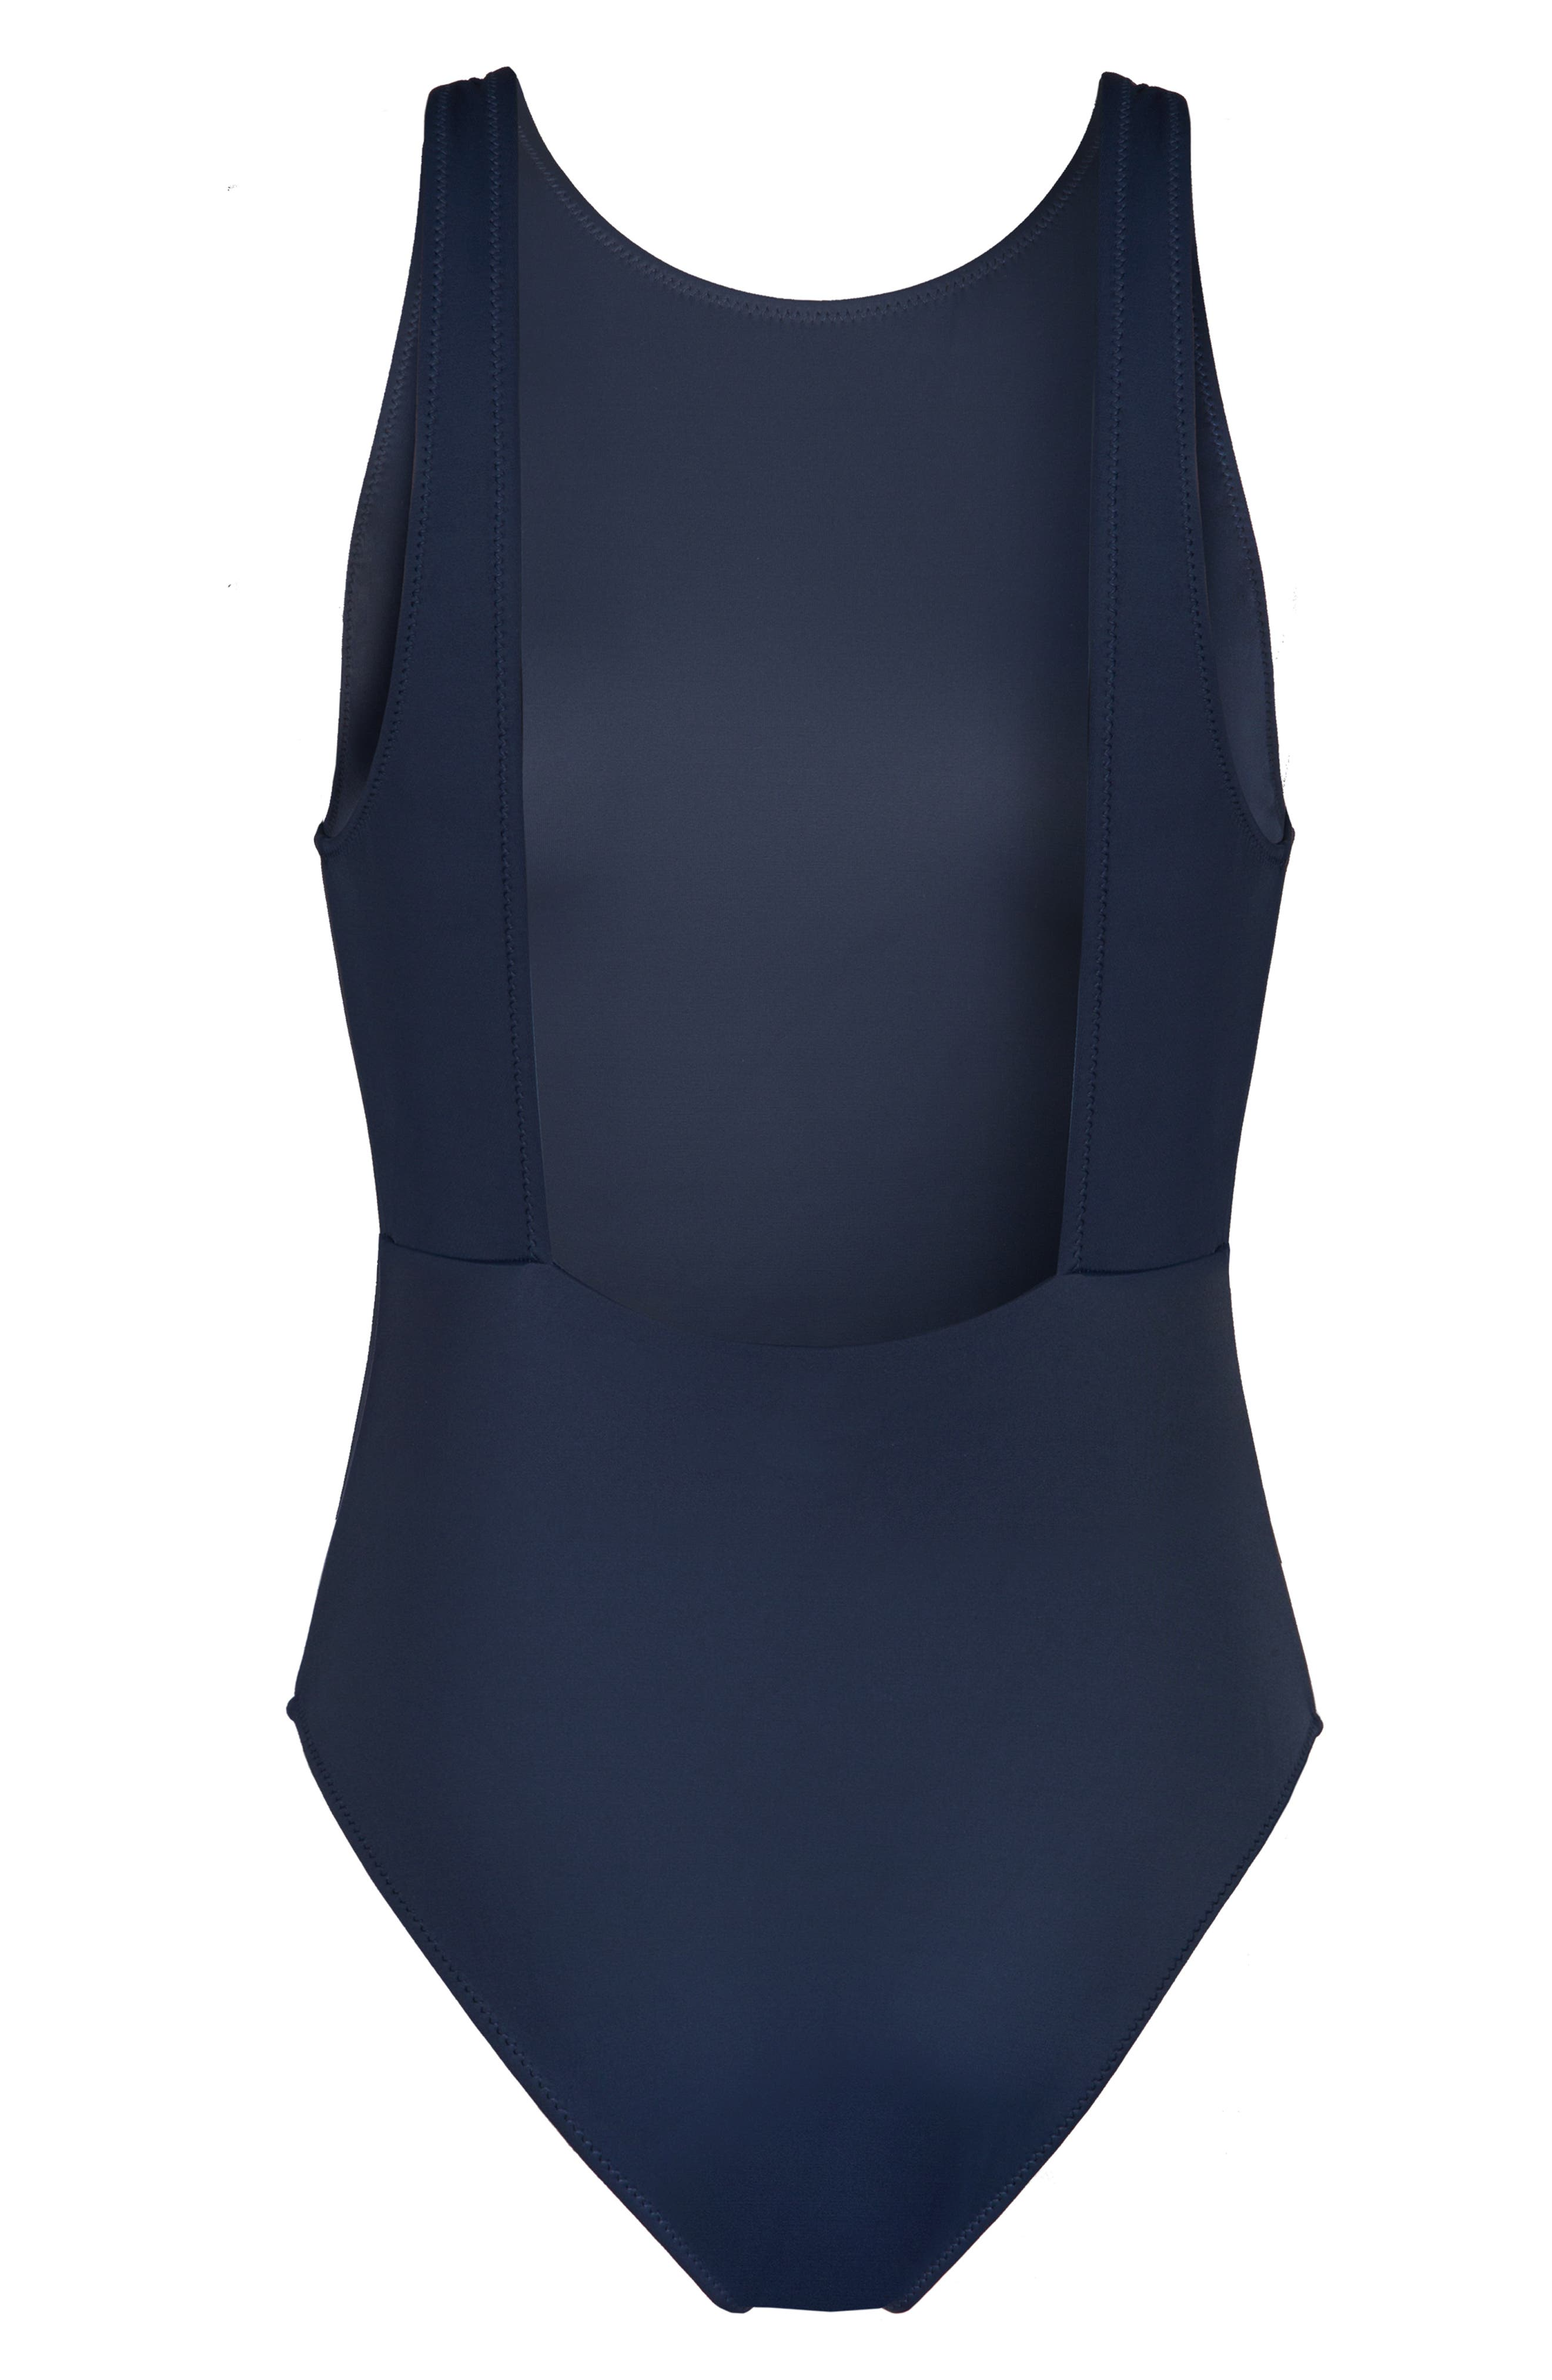 LIVELY, The Highneck One-Piece Swimsuit, Alternate thumbnail 4, color, LIVELY NAVY